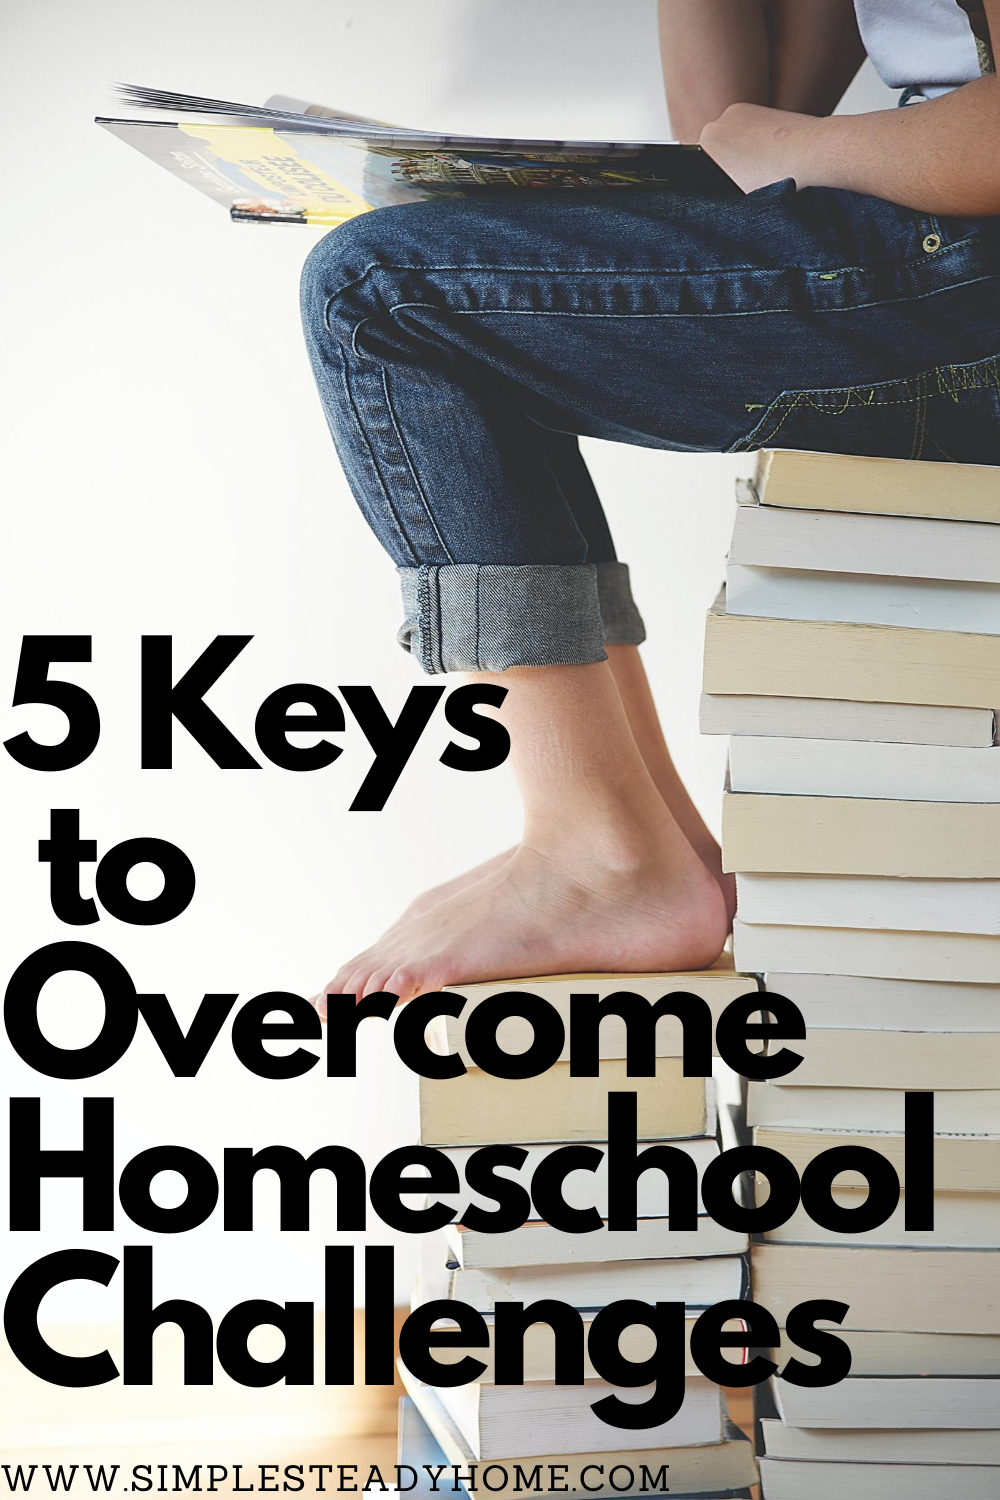 5 keys to overcome homeschool challenges